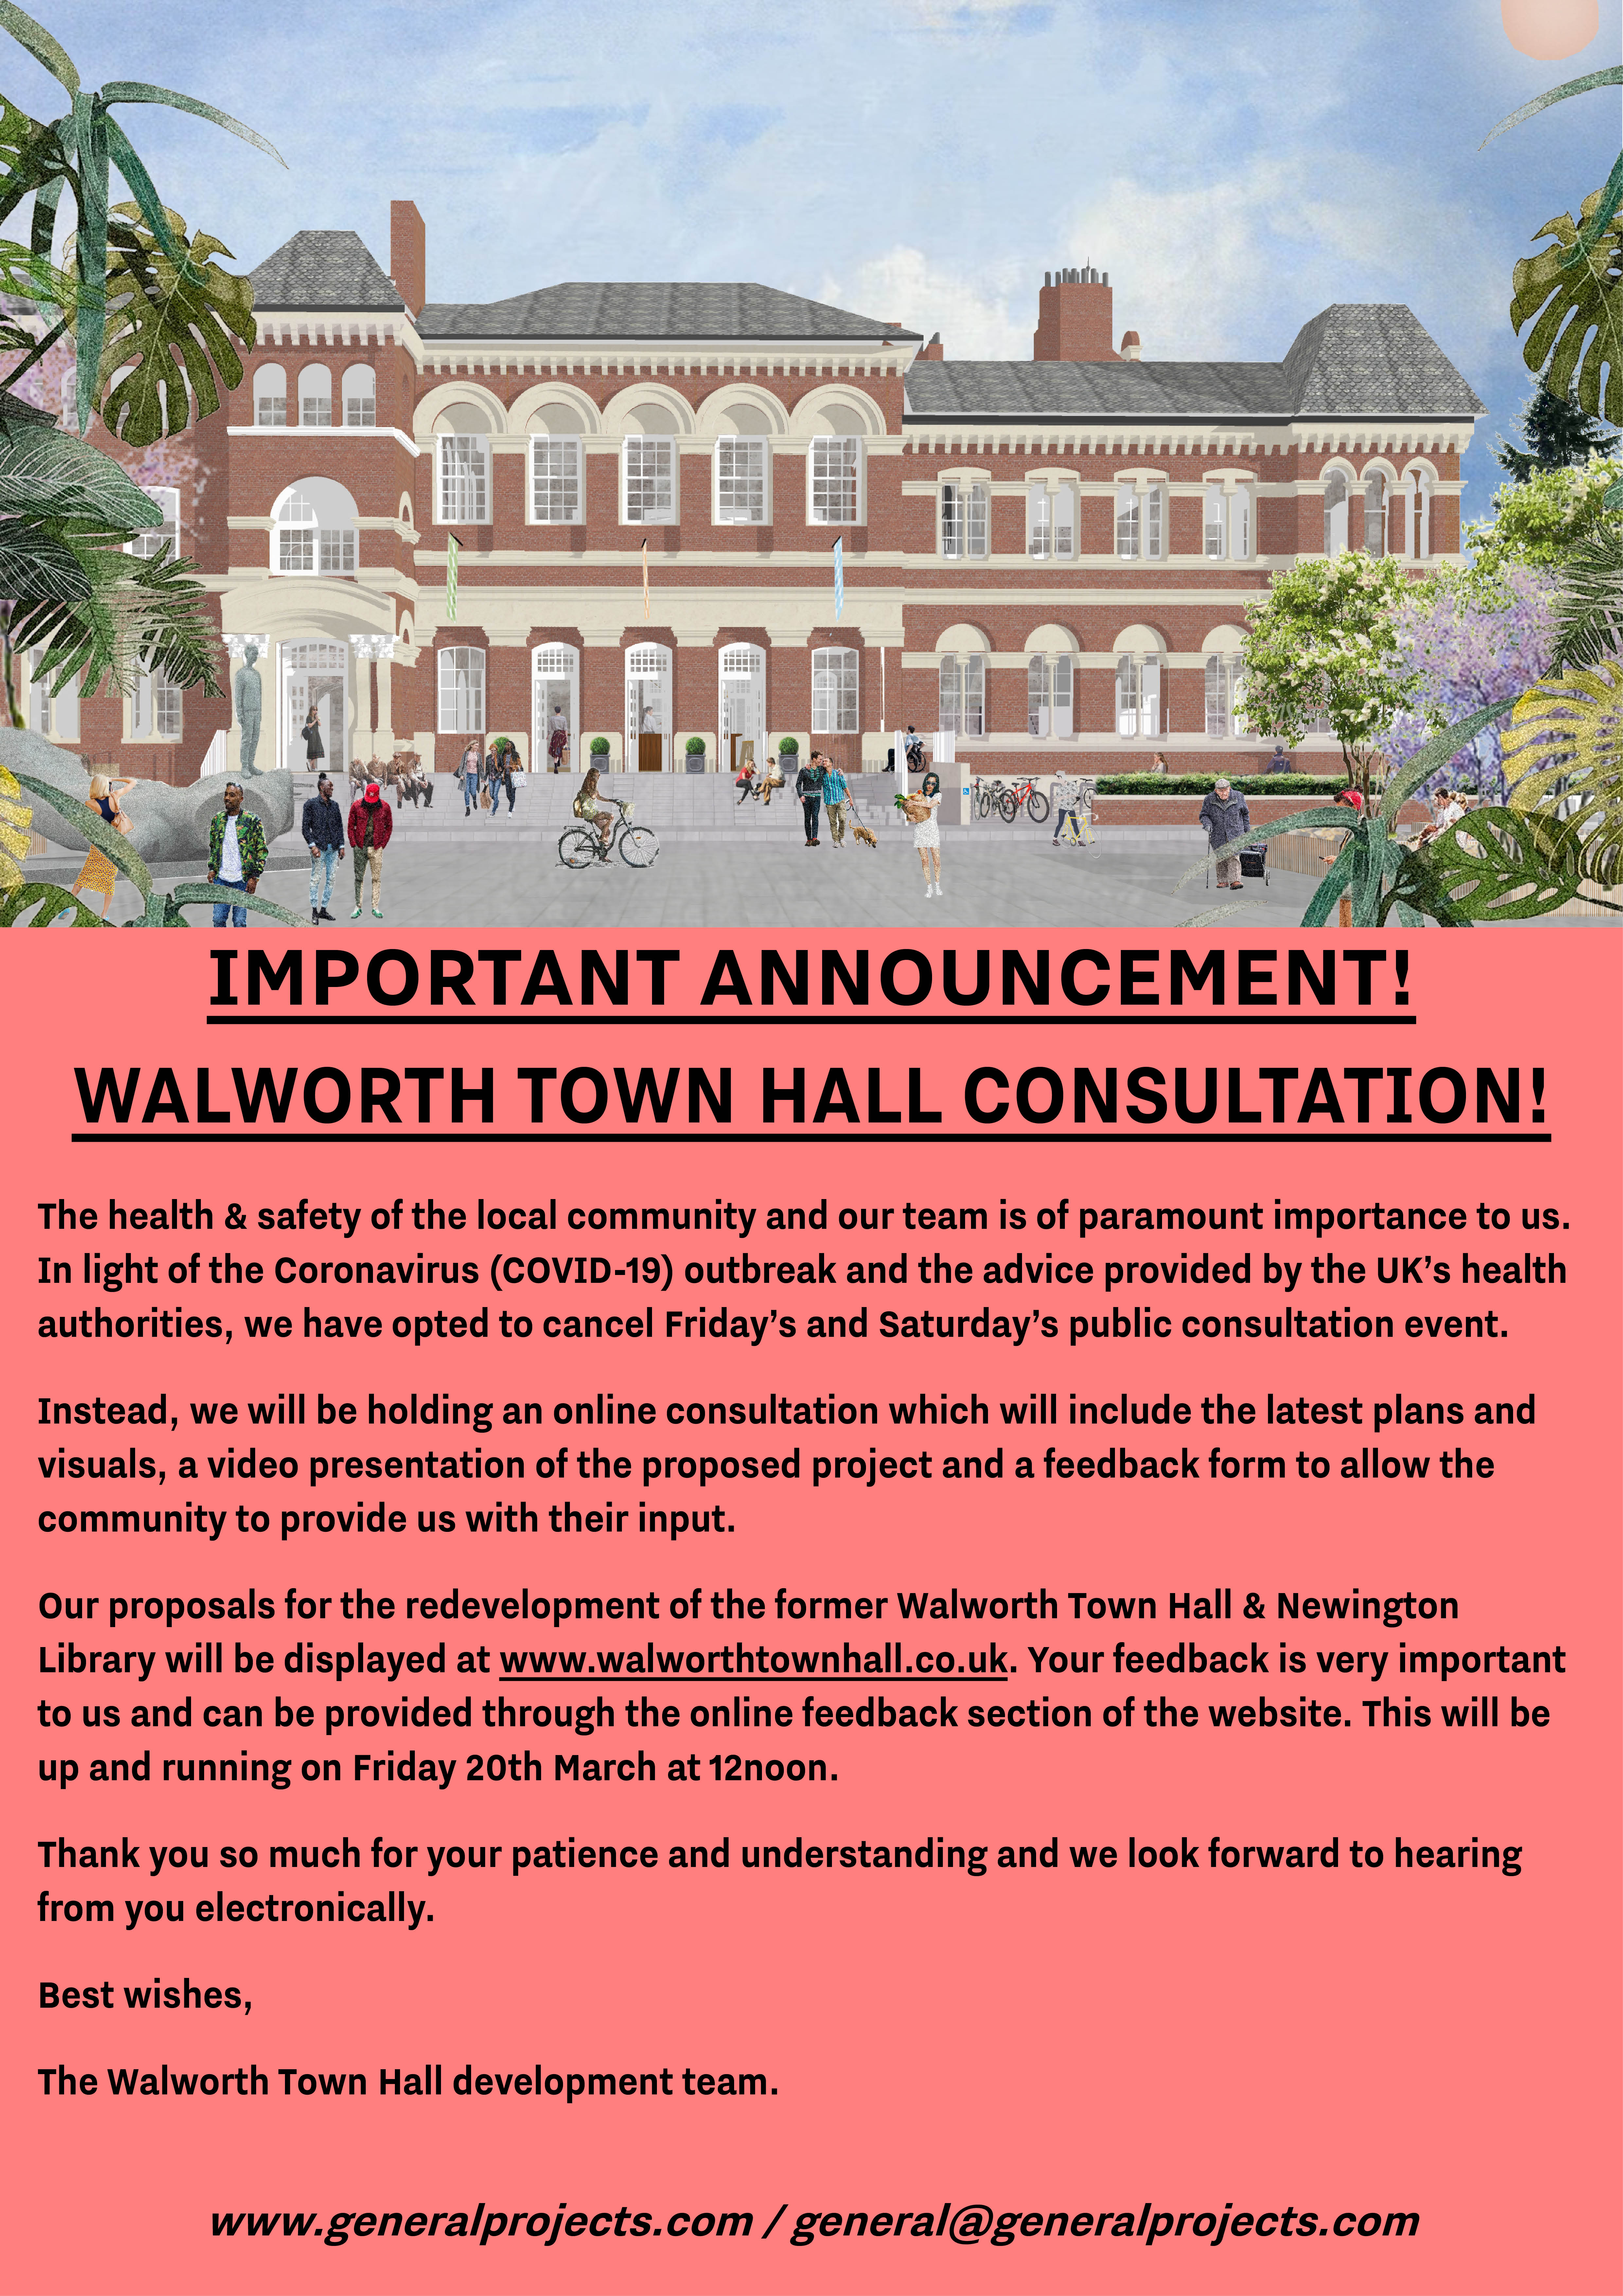 Walworth Town Hall & former Newington Library Public Consultation: Now Online